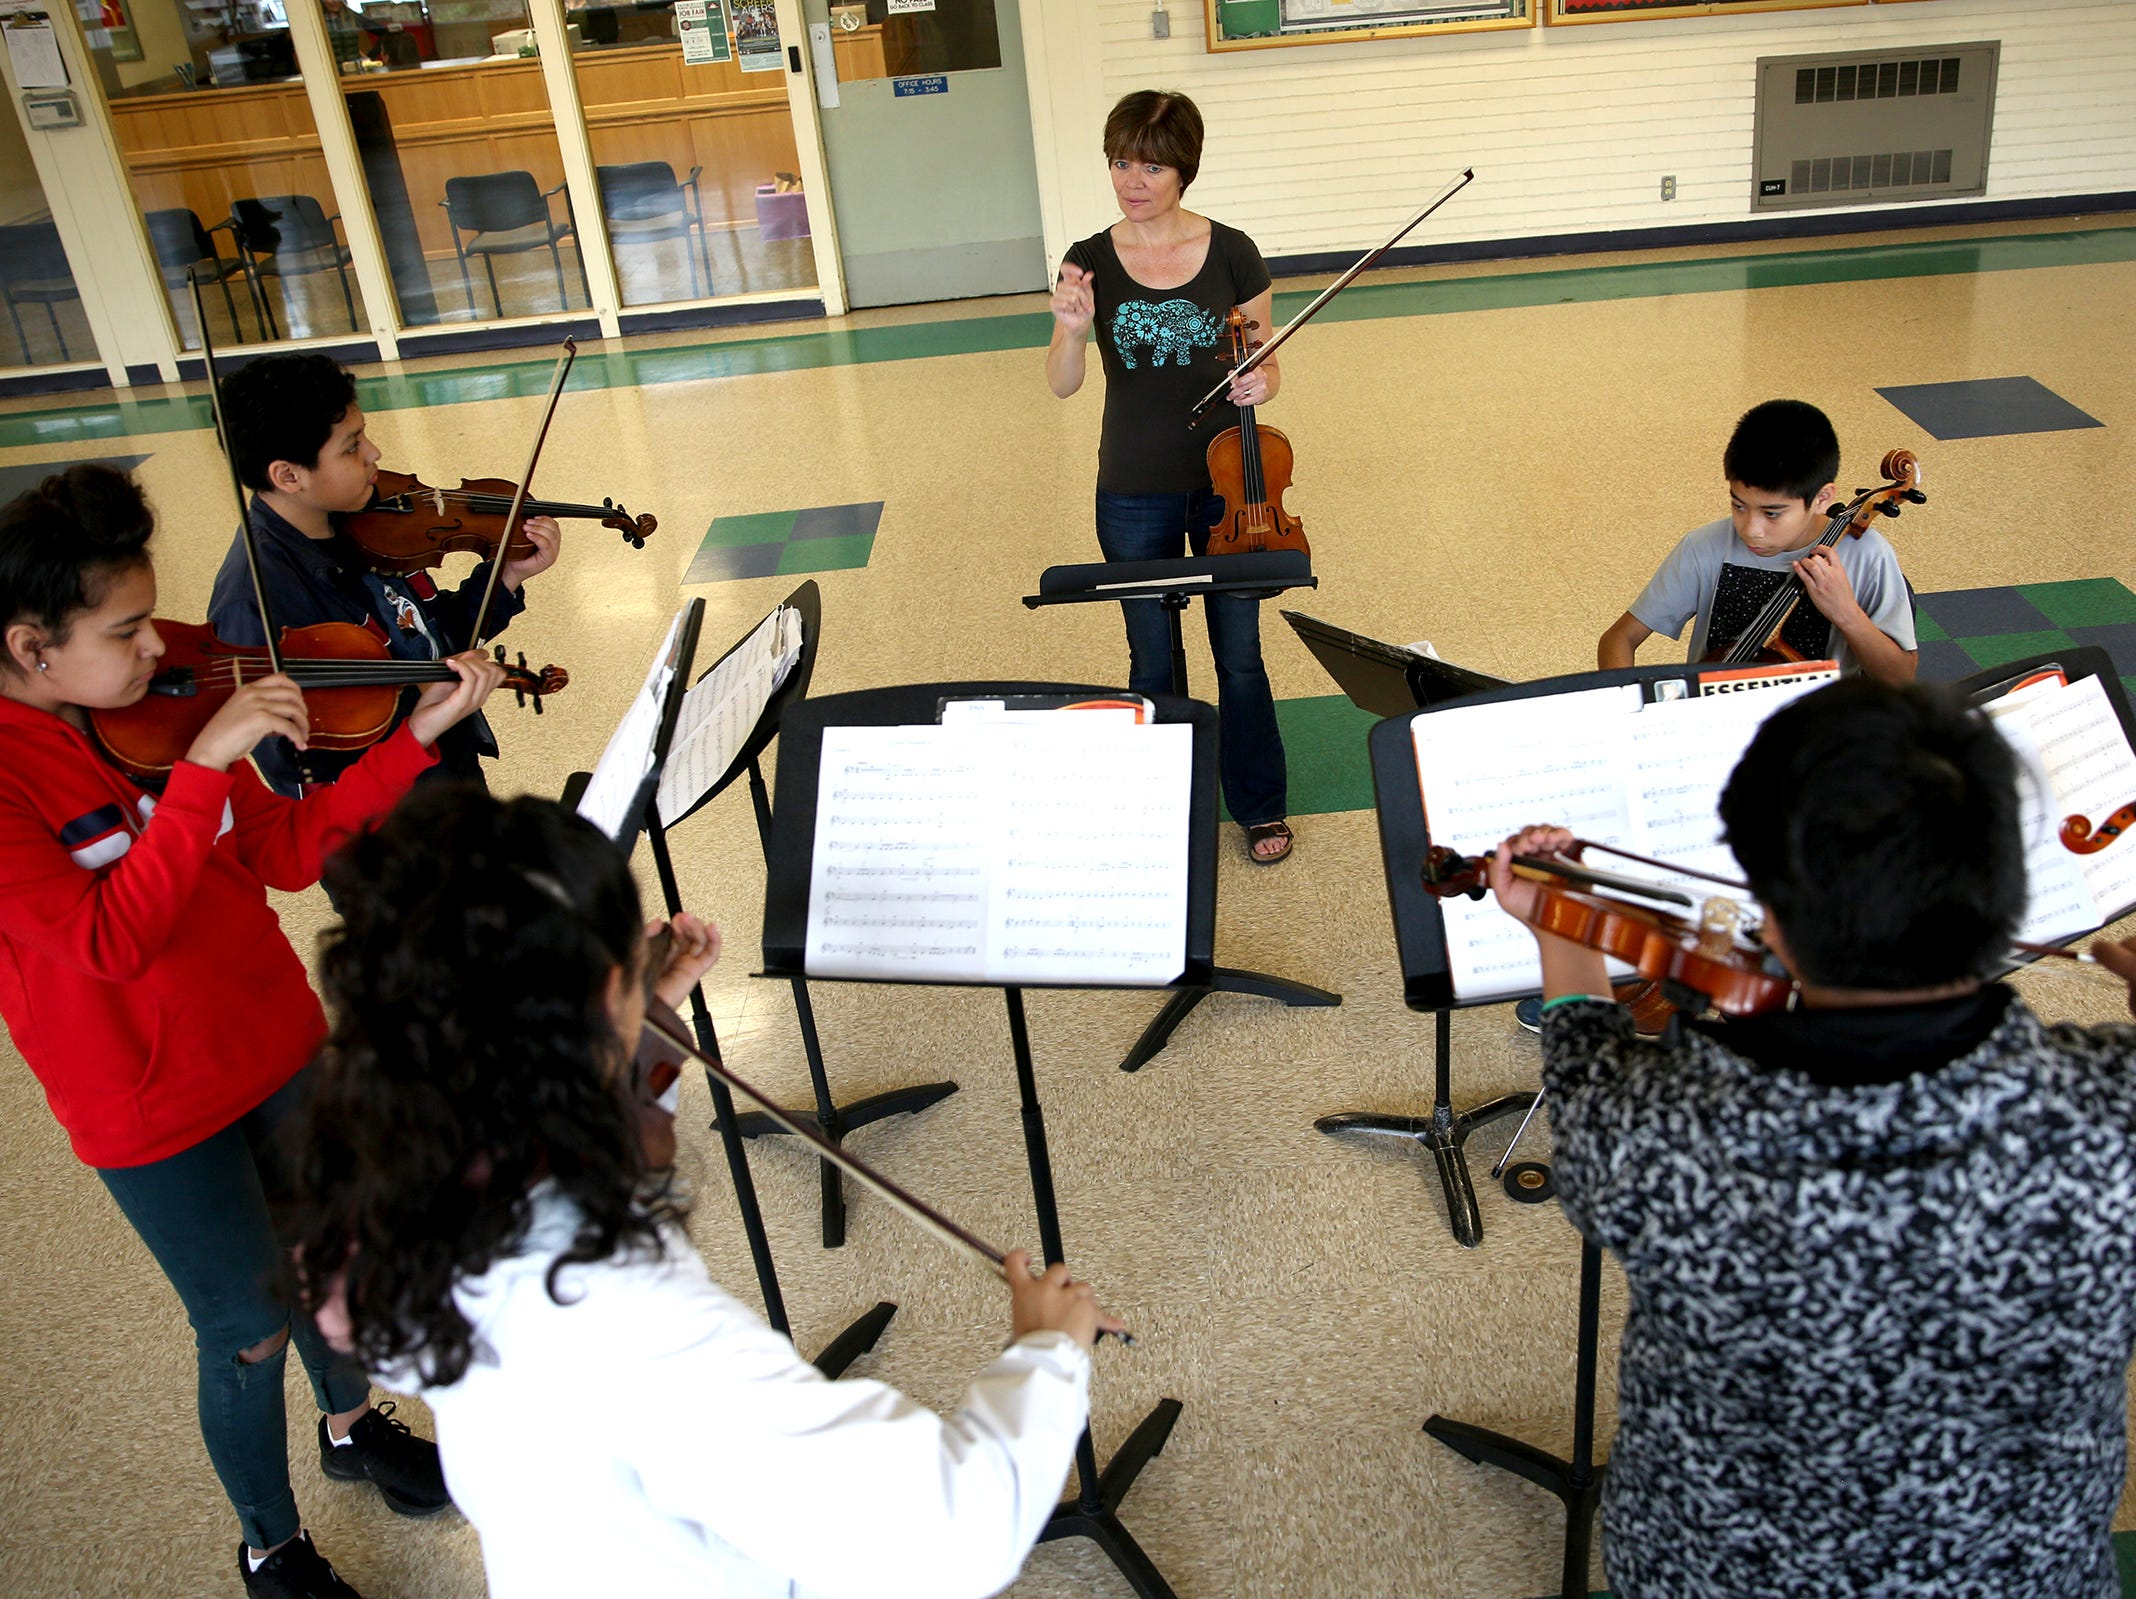 Music teacher, Sigrun Oprea, works with six sixth students through the Music Lessons Project, which offers private or small group lessons to students in Title I schools, at Waldo Middle School on April 19, 2019.